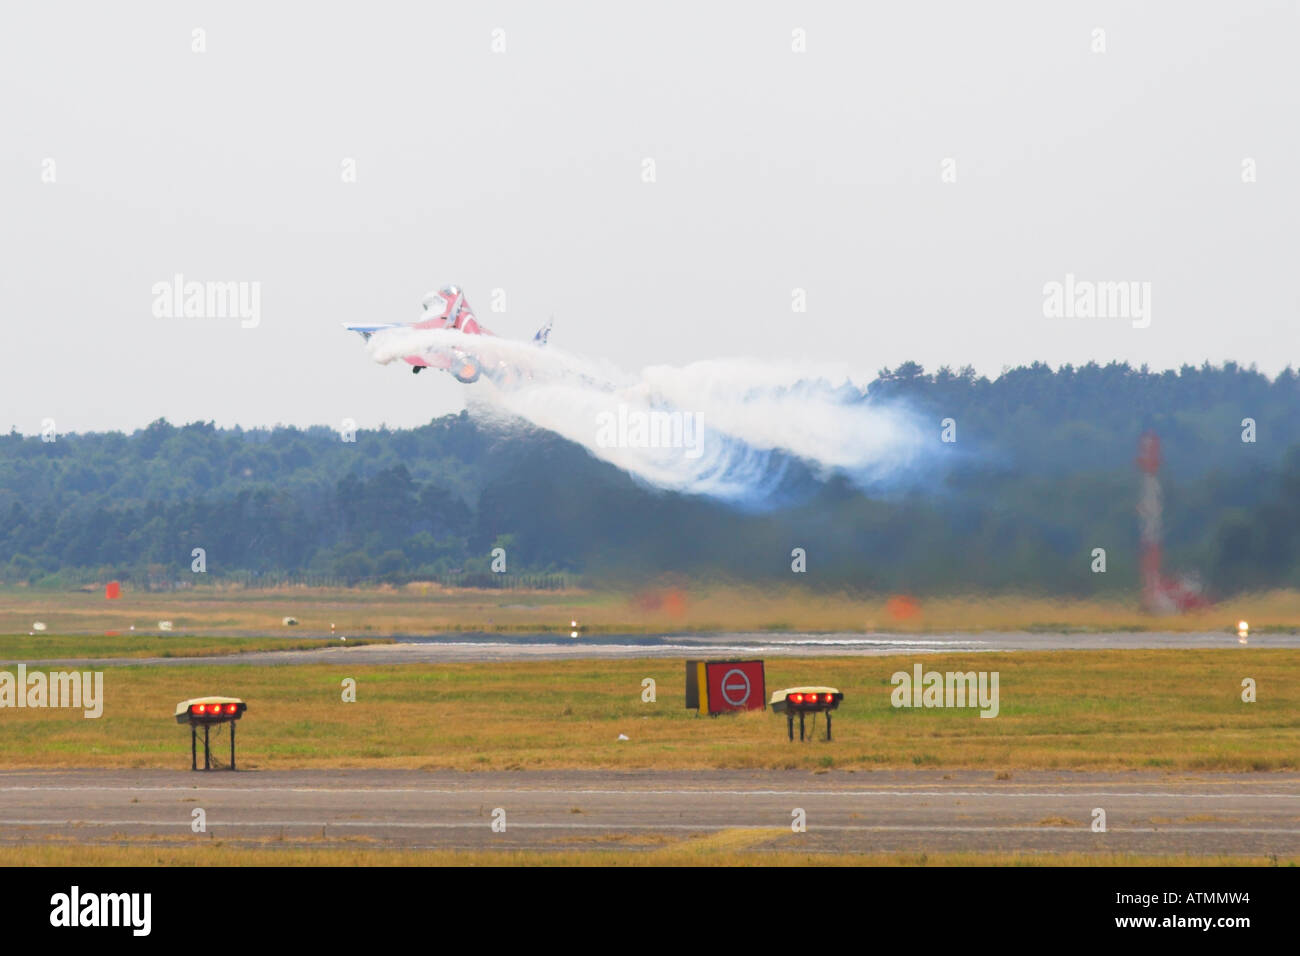 MIG 29 OVT taking off on reheat trailing white smoke vortices - Stock Image